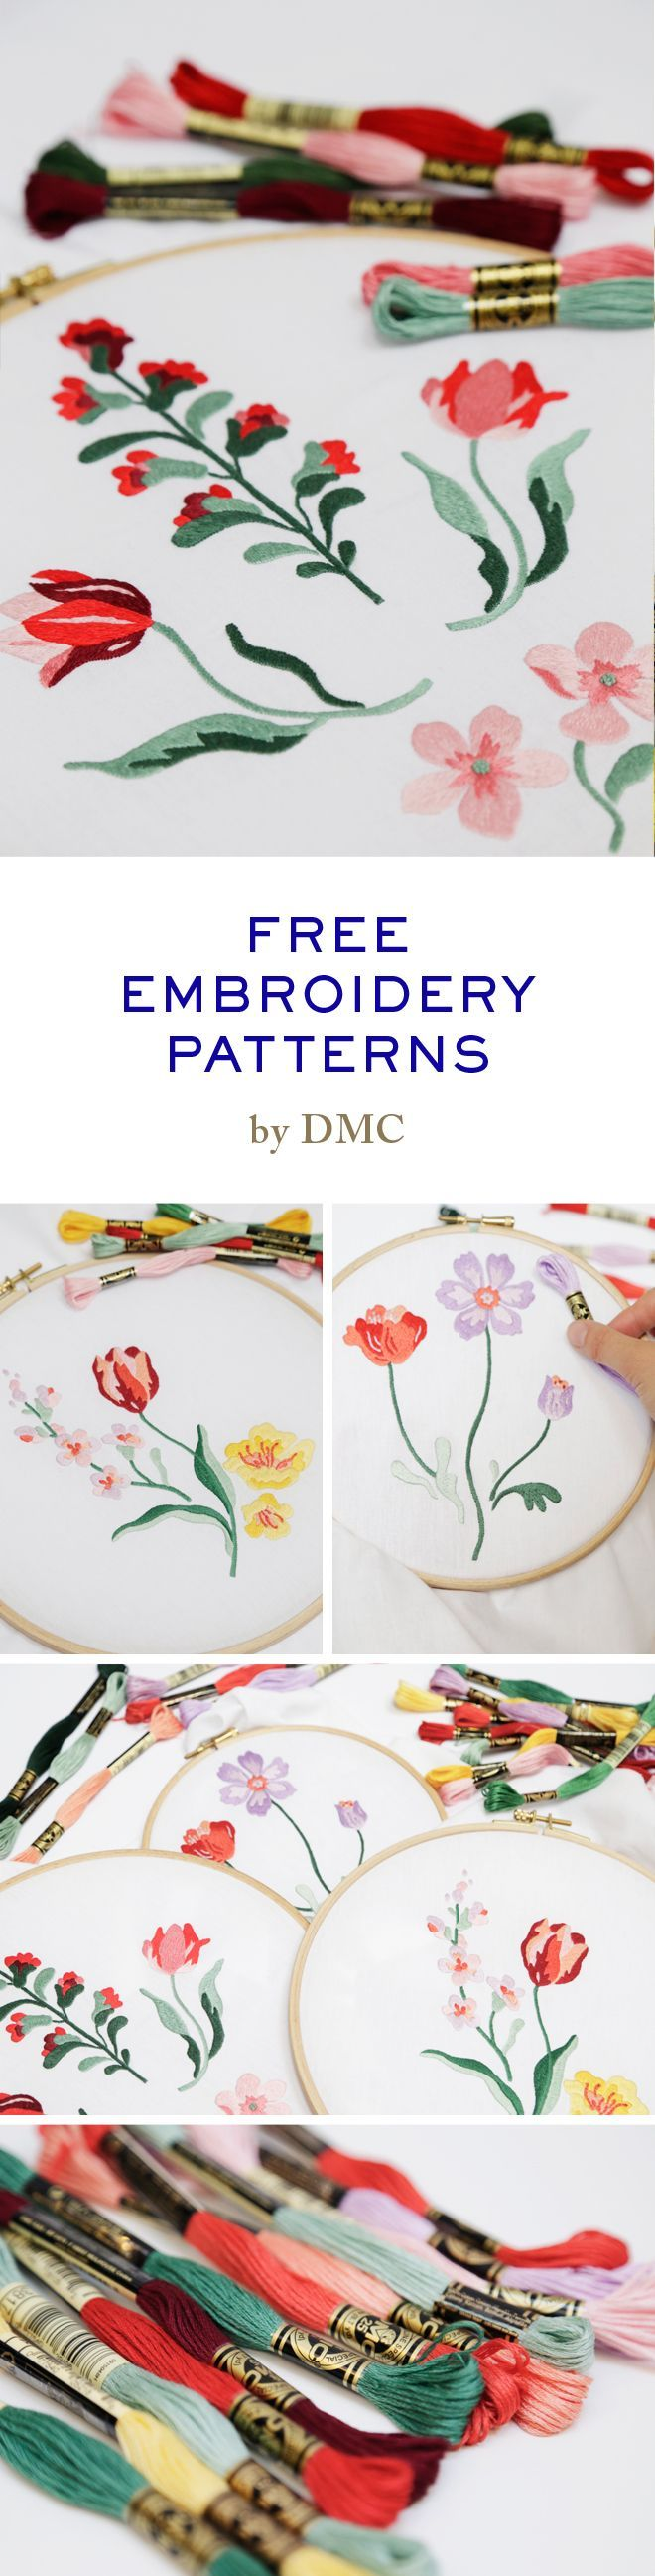 Free embroidery patterns on the website | Bordados | Pinterest ...